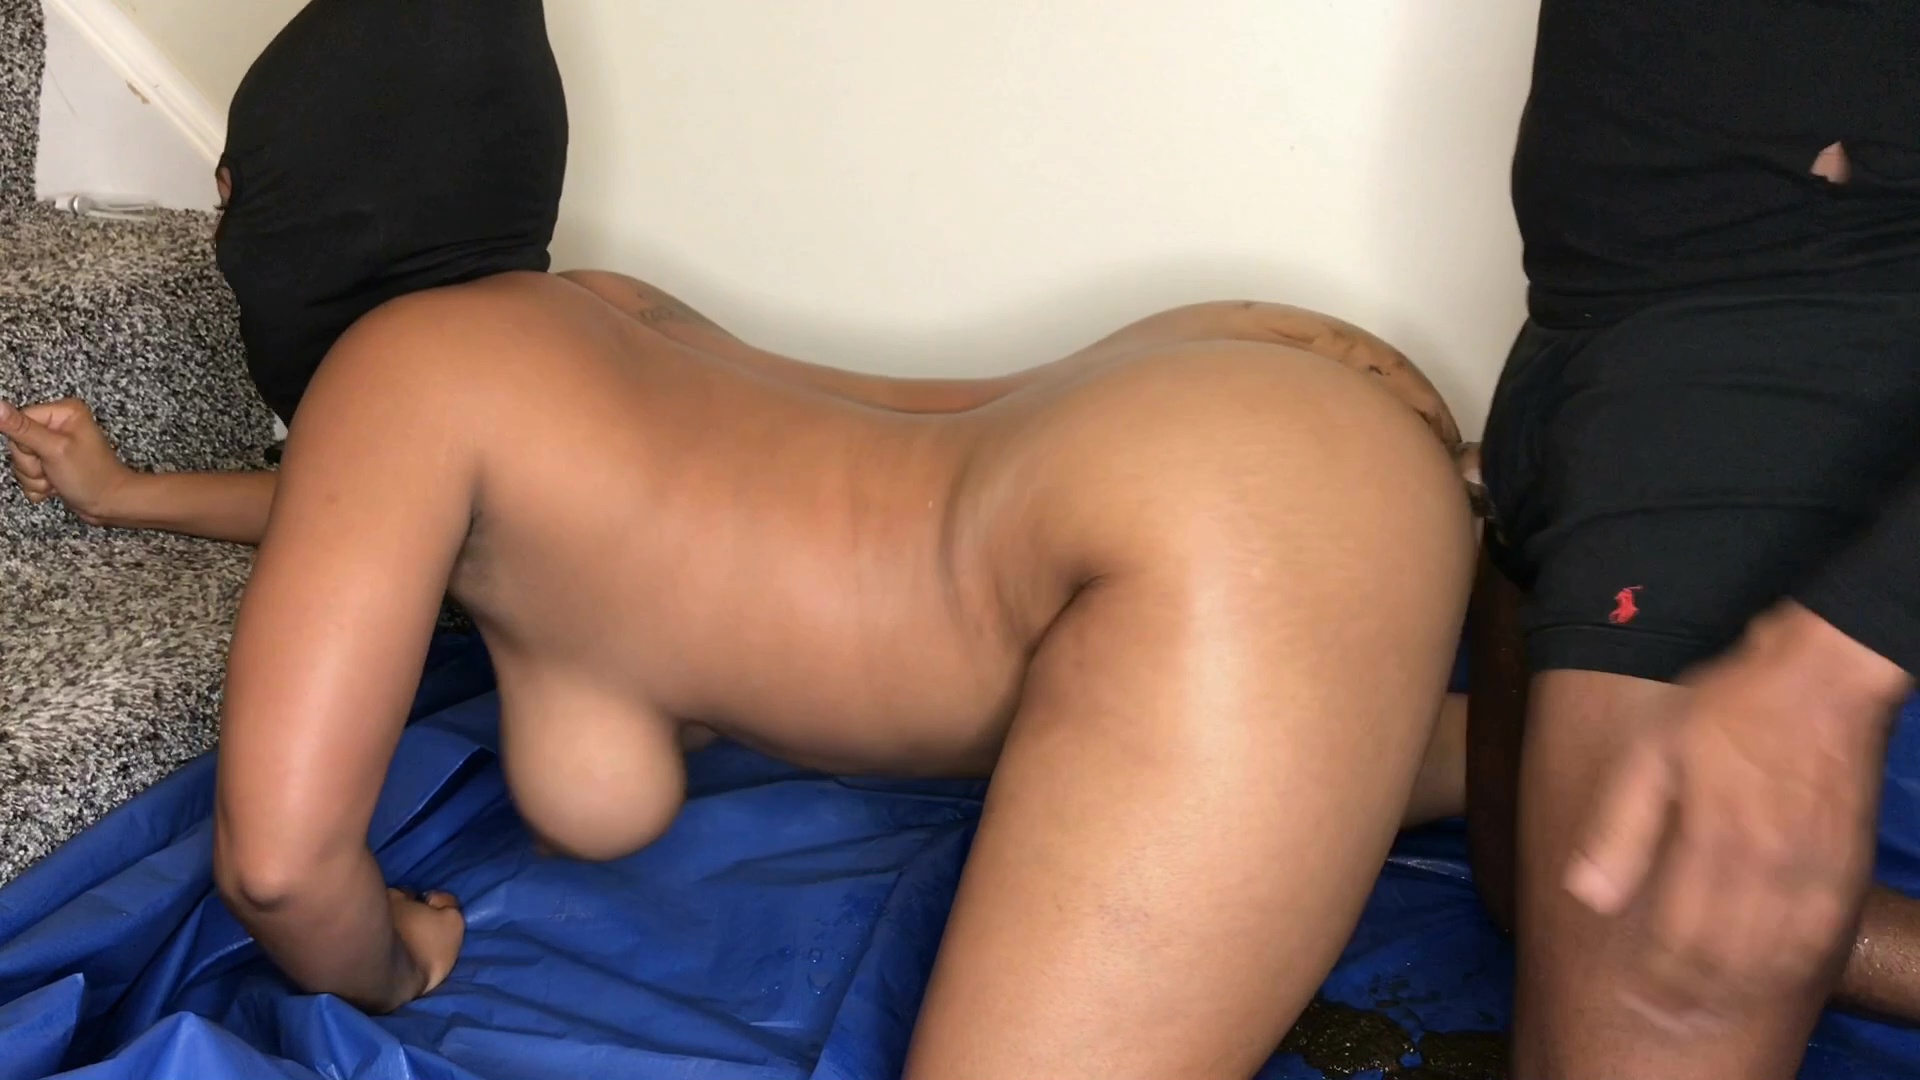 Brownsensations - Filthy anal 2